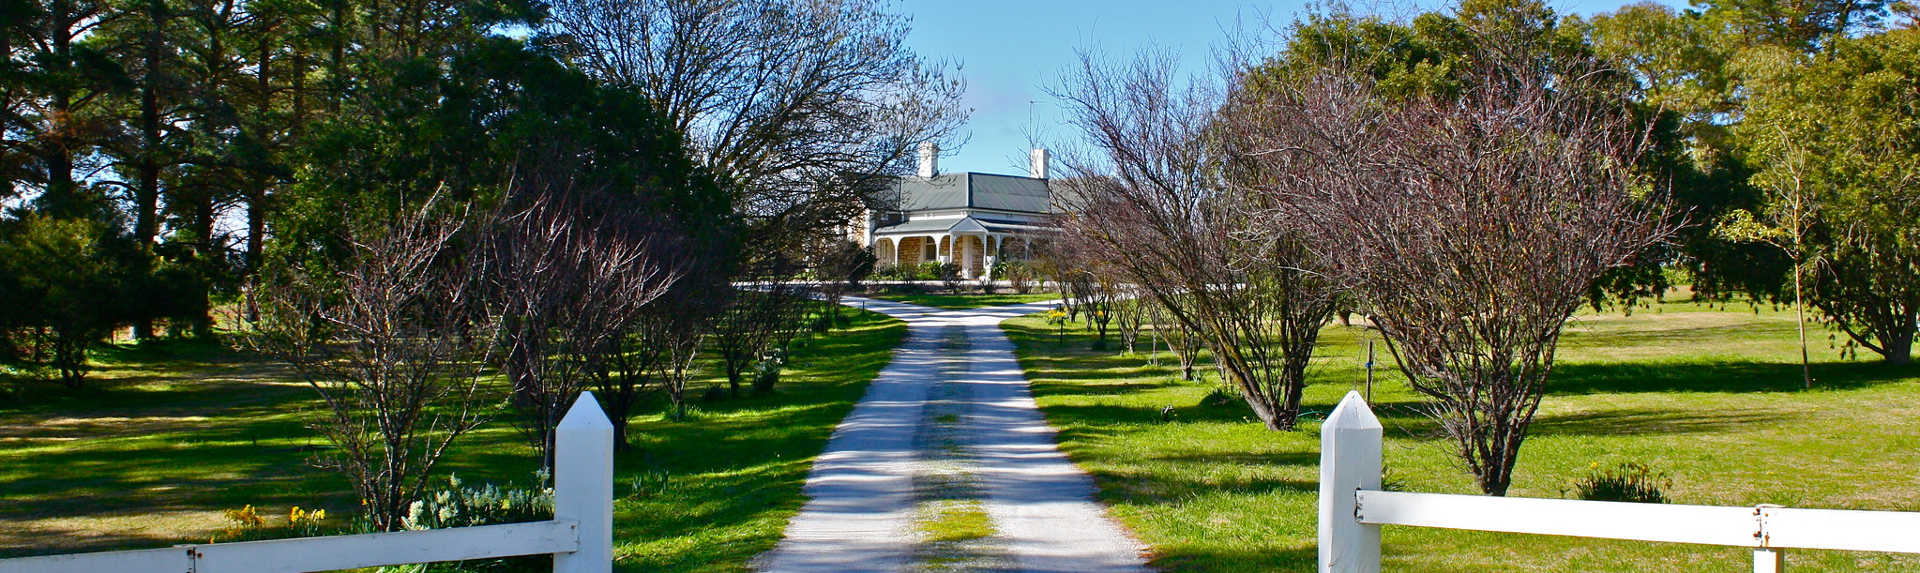 Which state is the Barossa Valley located in?